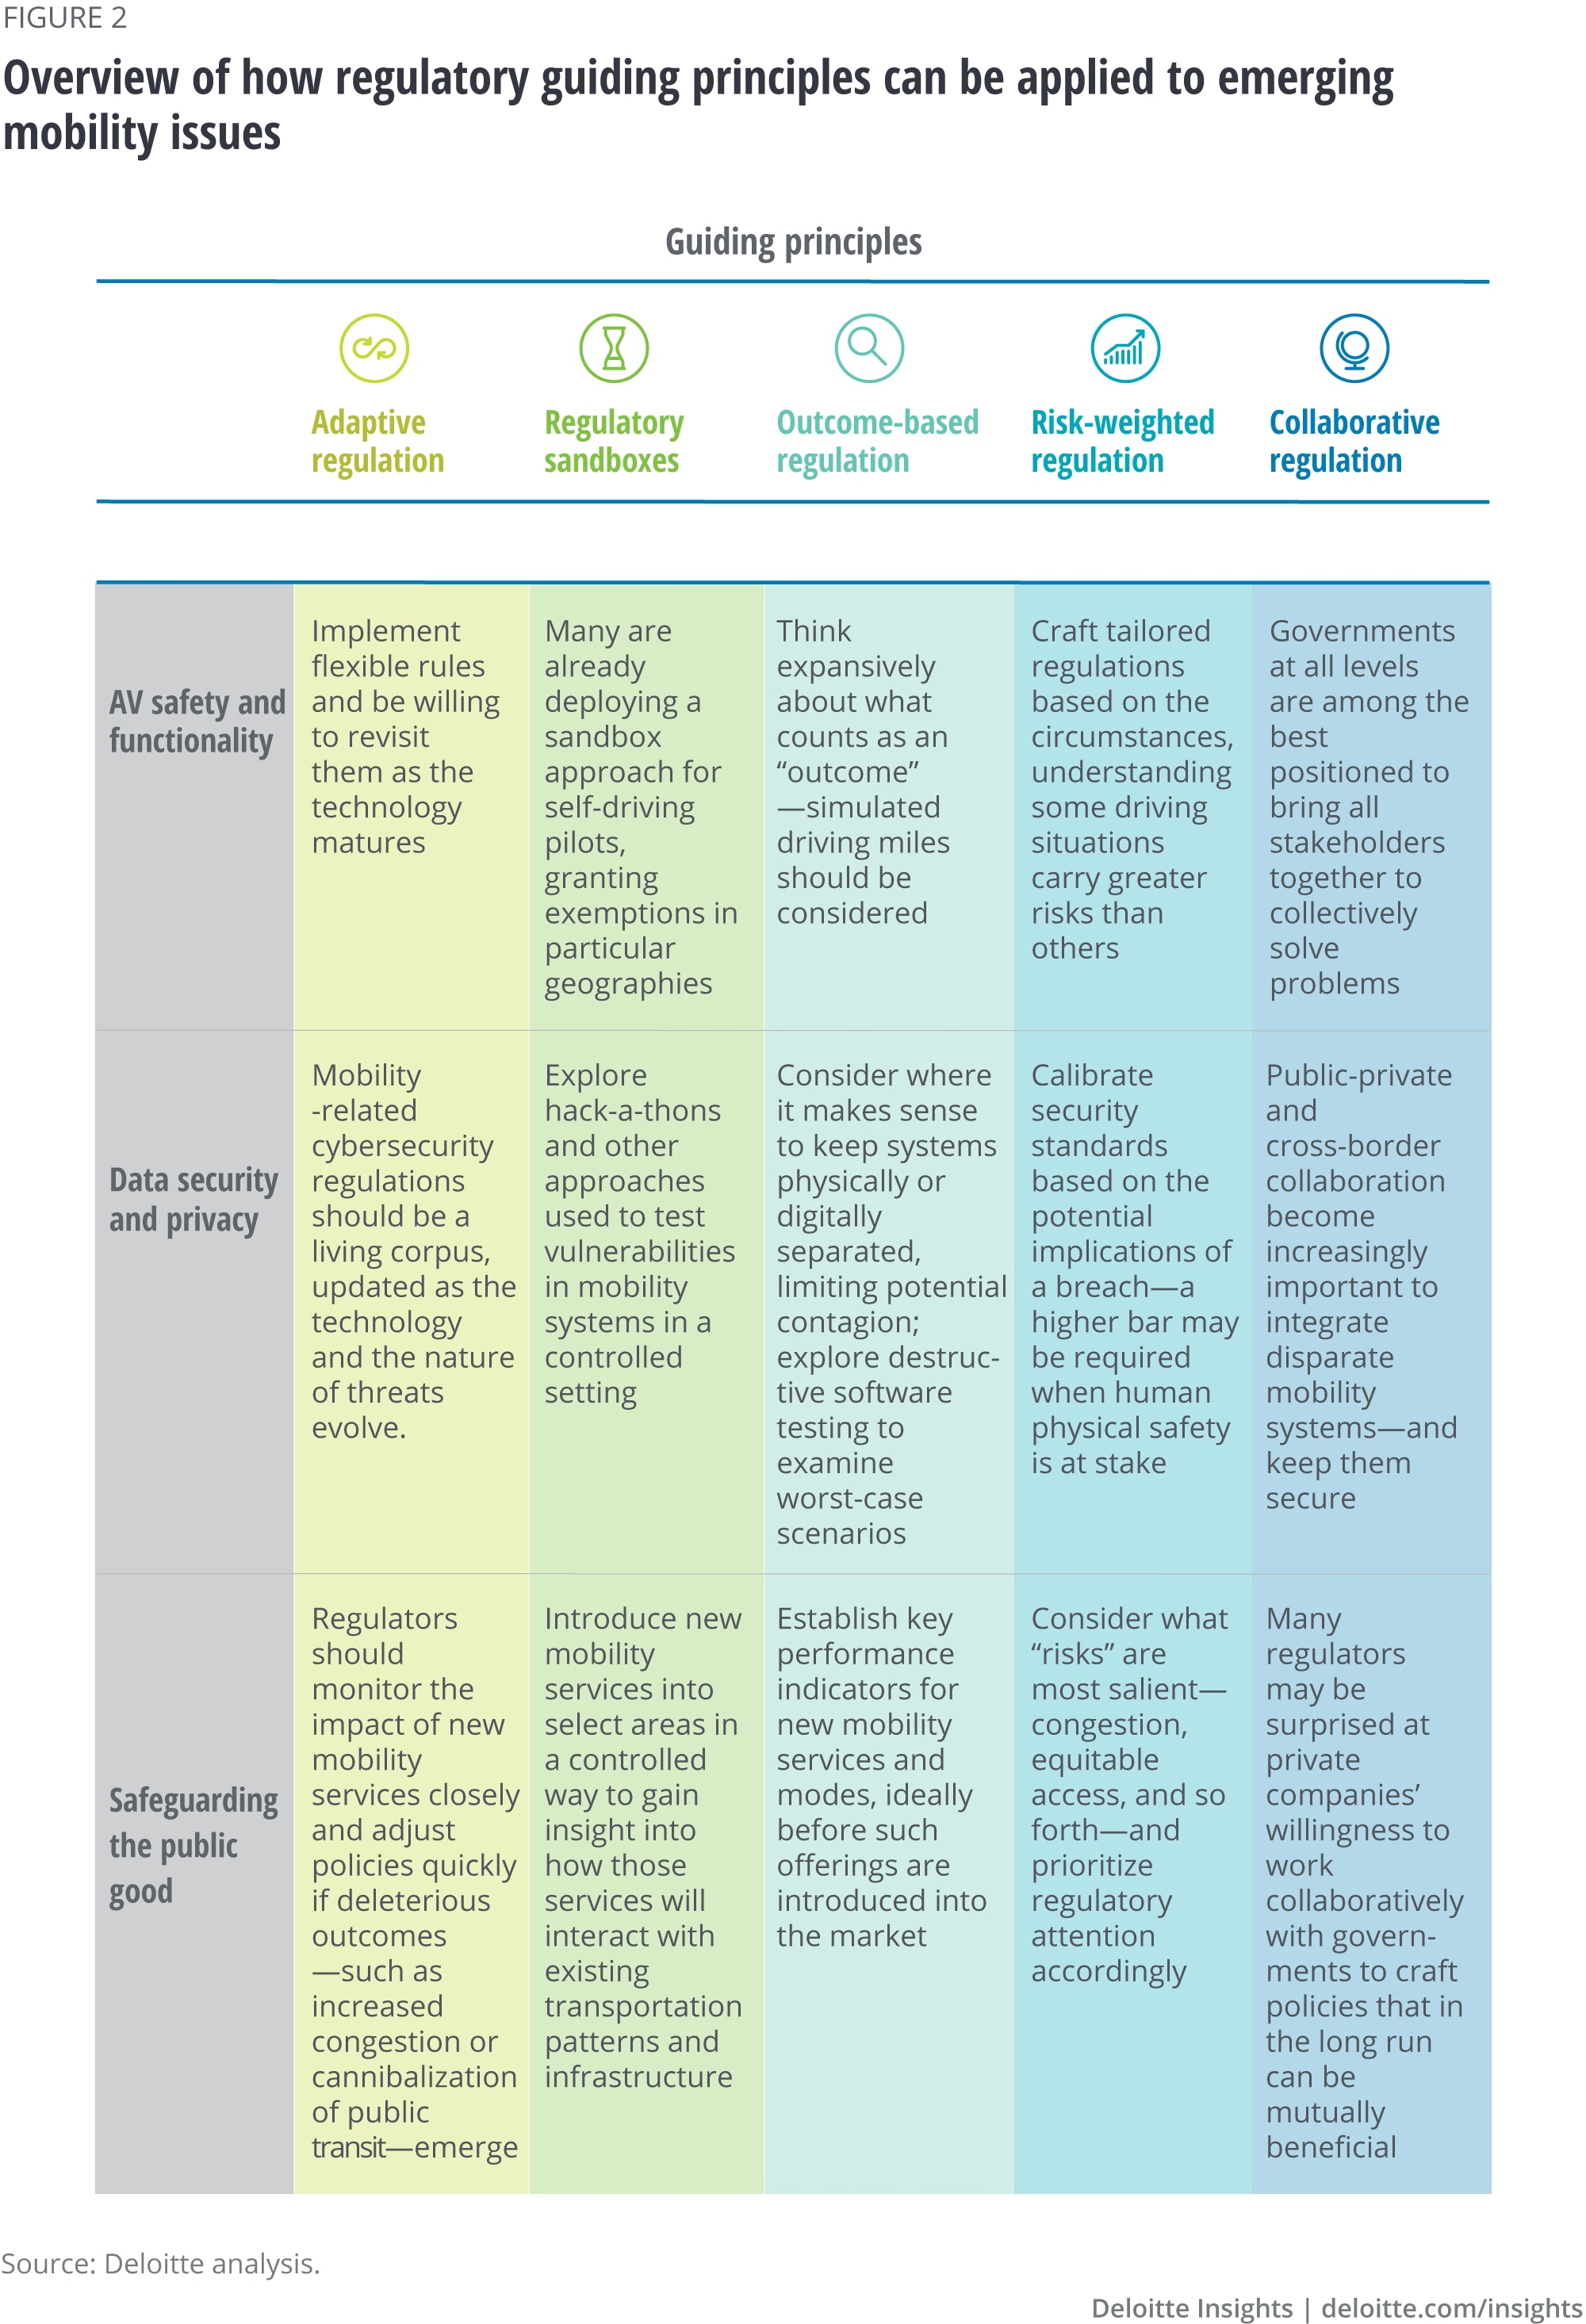 Figure 2. Overview of how regulatory guiding principles can be applied to emerging mobility issues